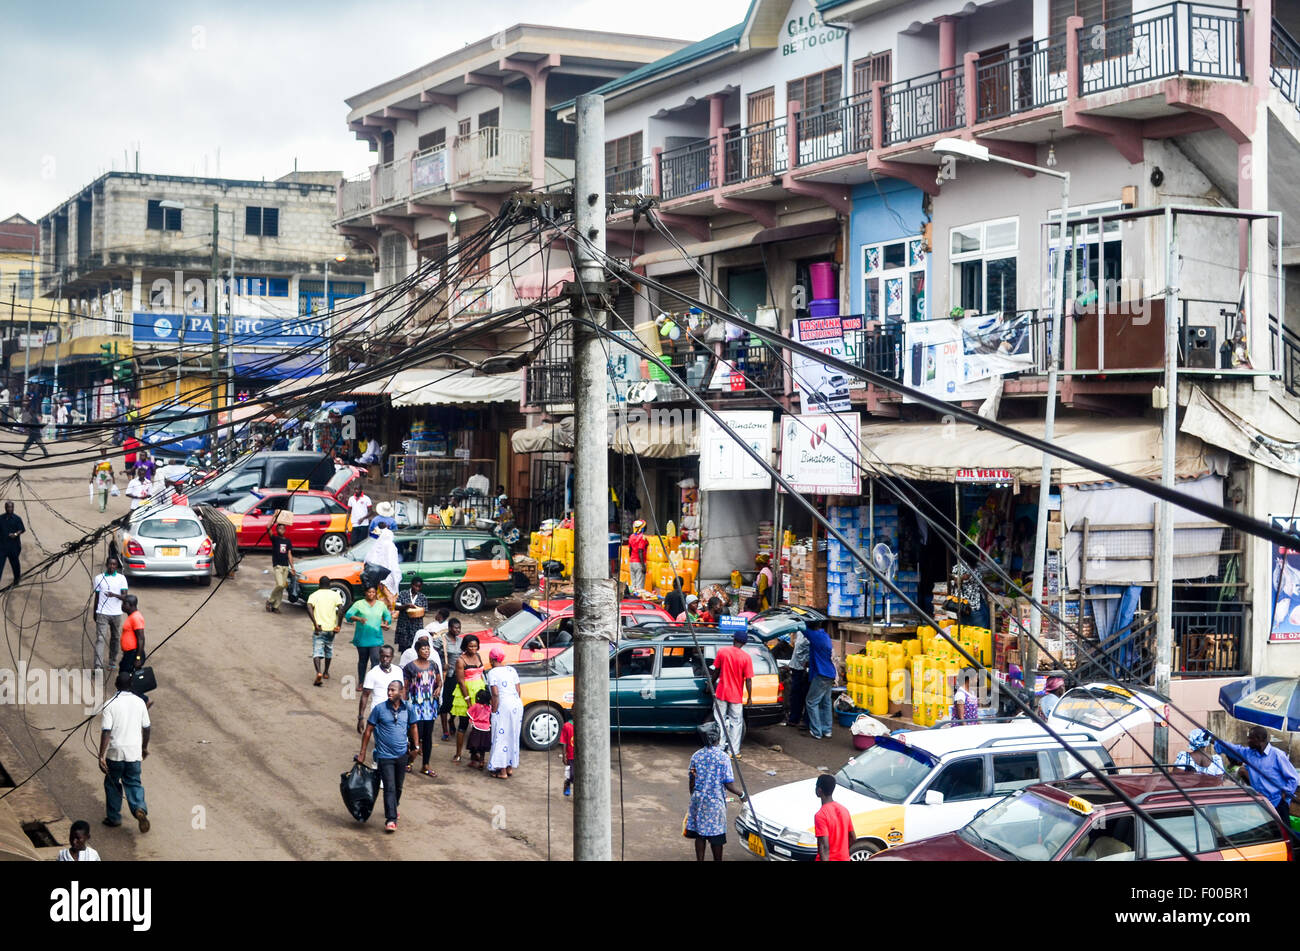 Kejetia market (Kumasi central market) in Ghana, the largest single market in West Africa with over 10,000 stores - Stock Image